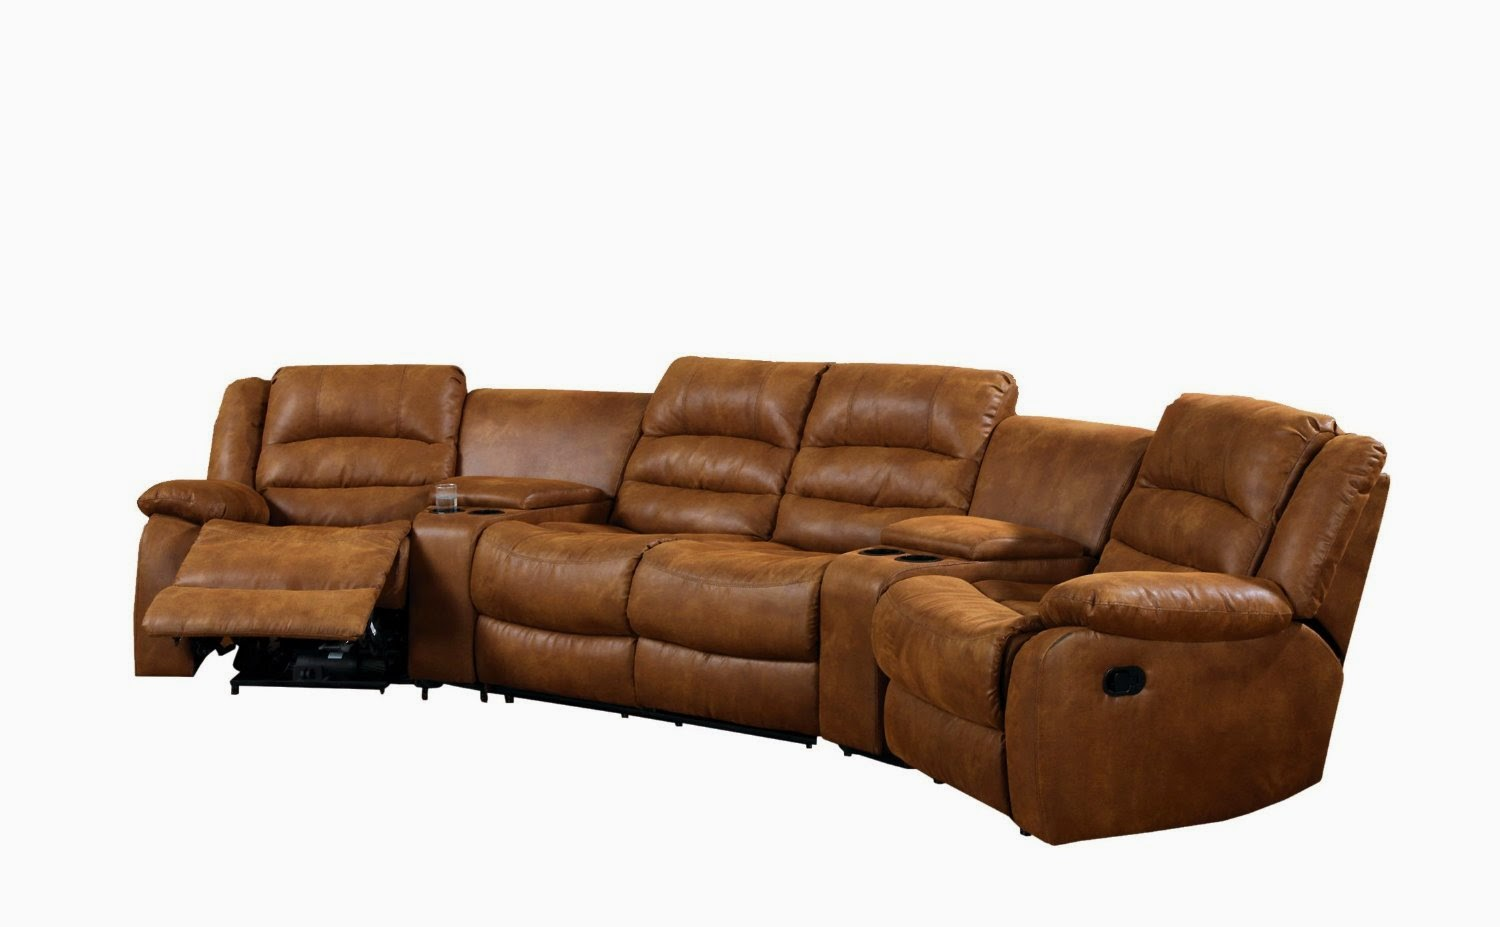 Best Reclining Sofa For The Money Whitaker Brown